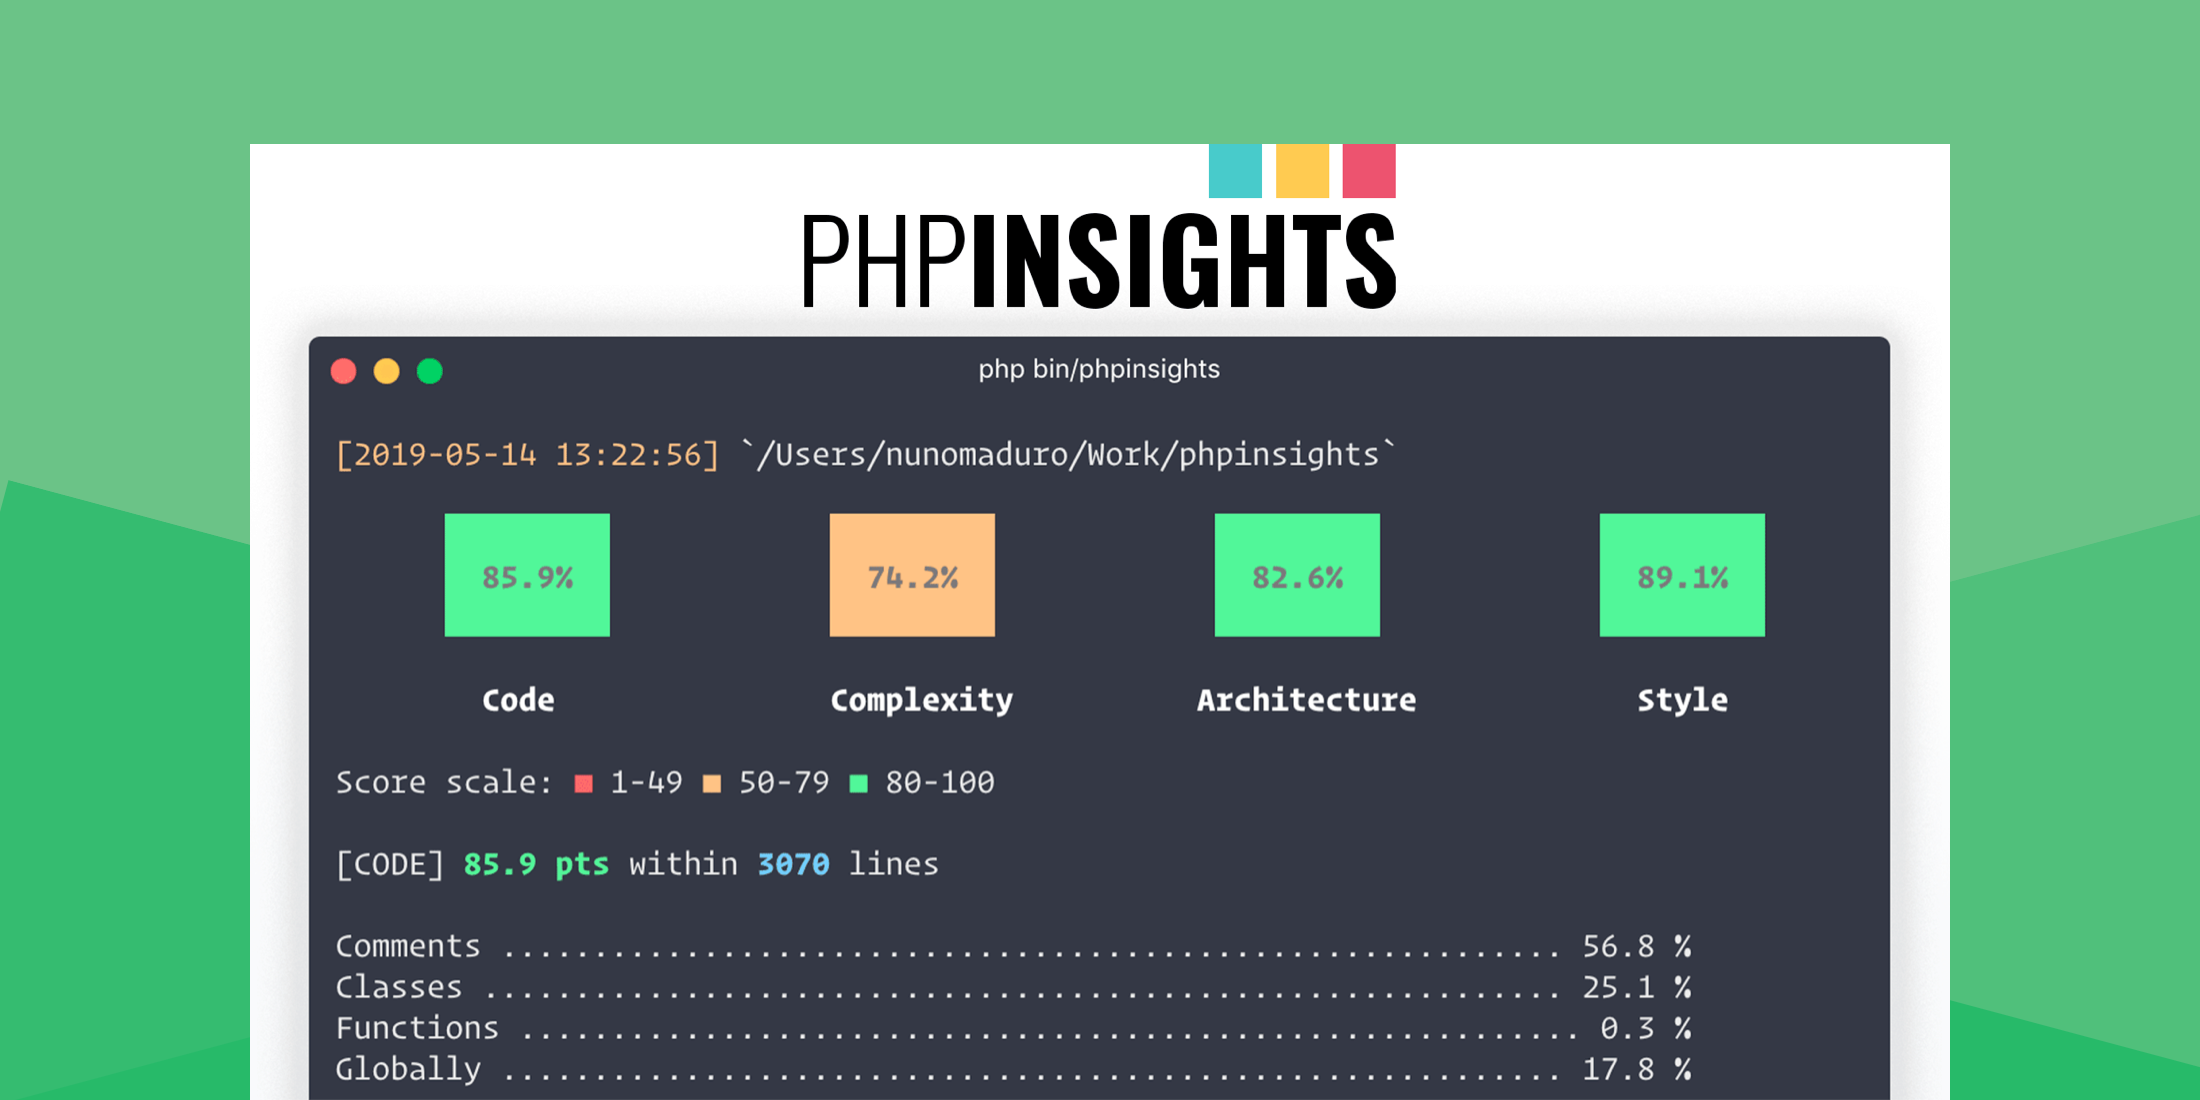 phpinsights-v2.png